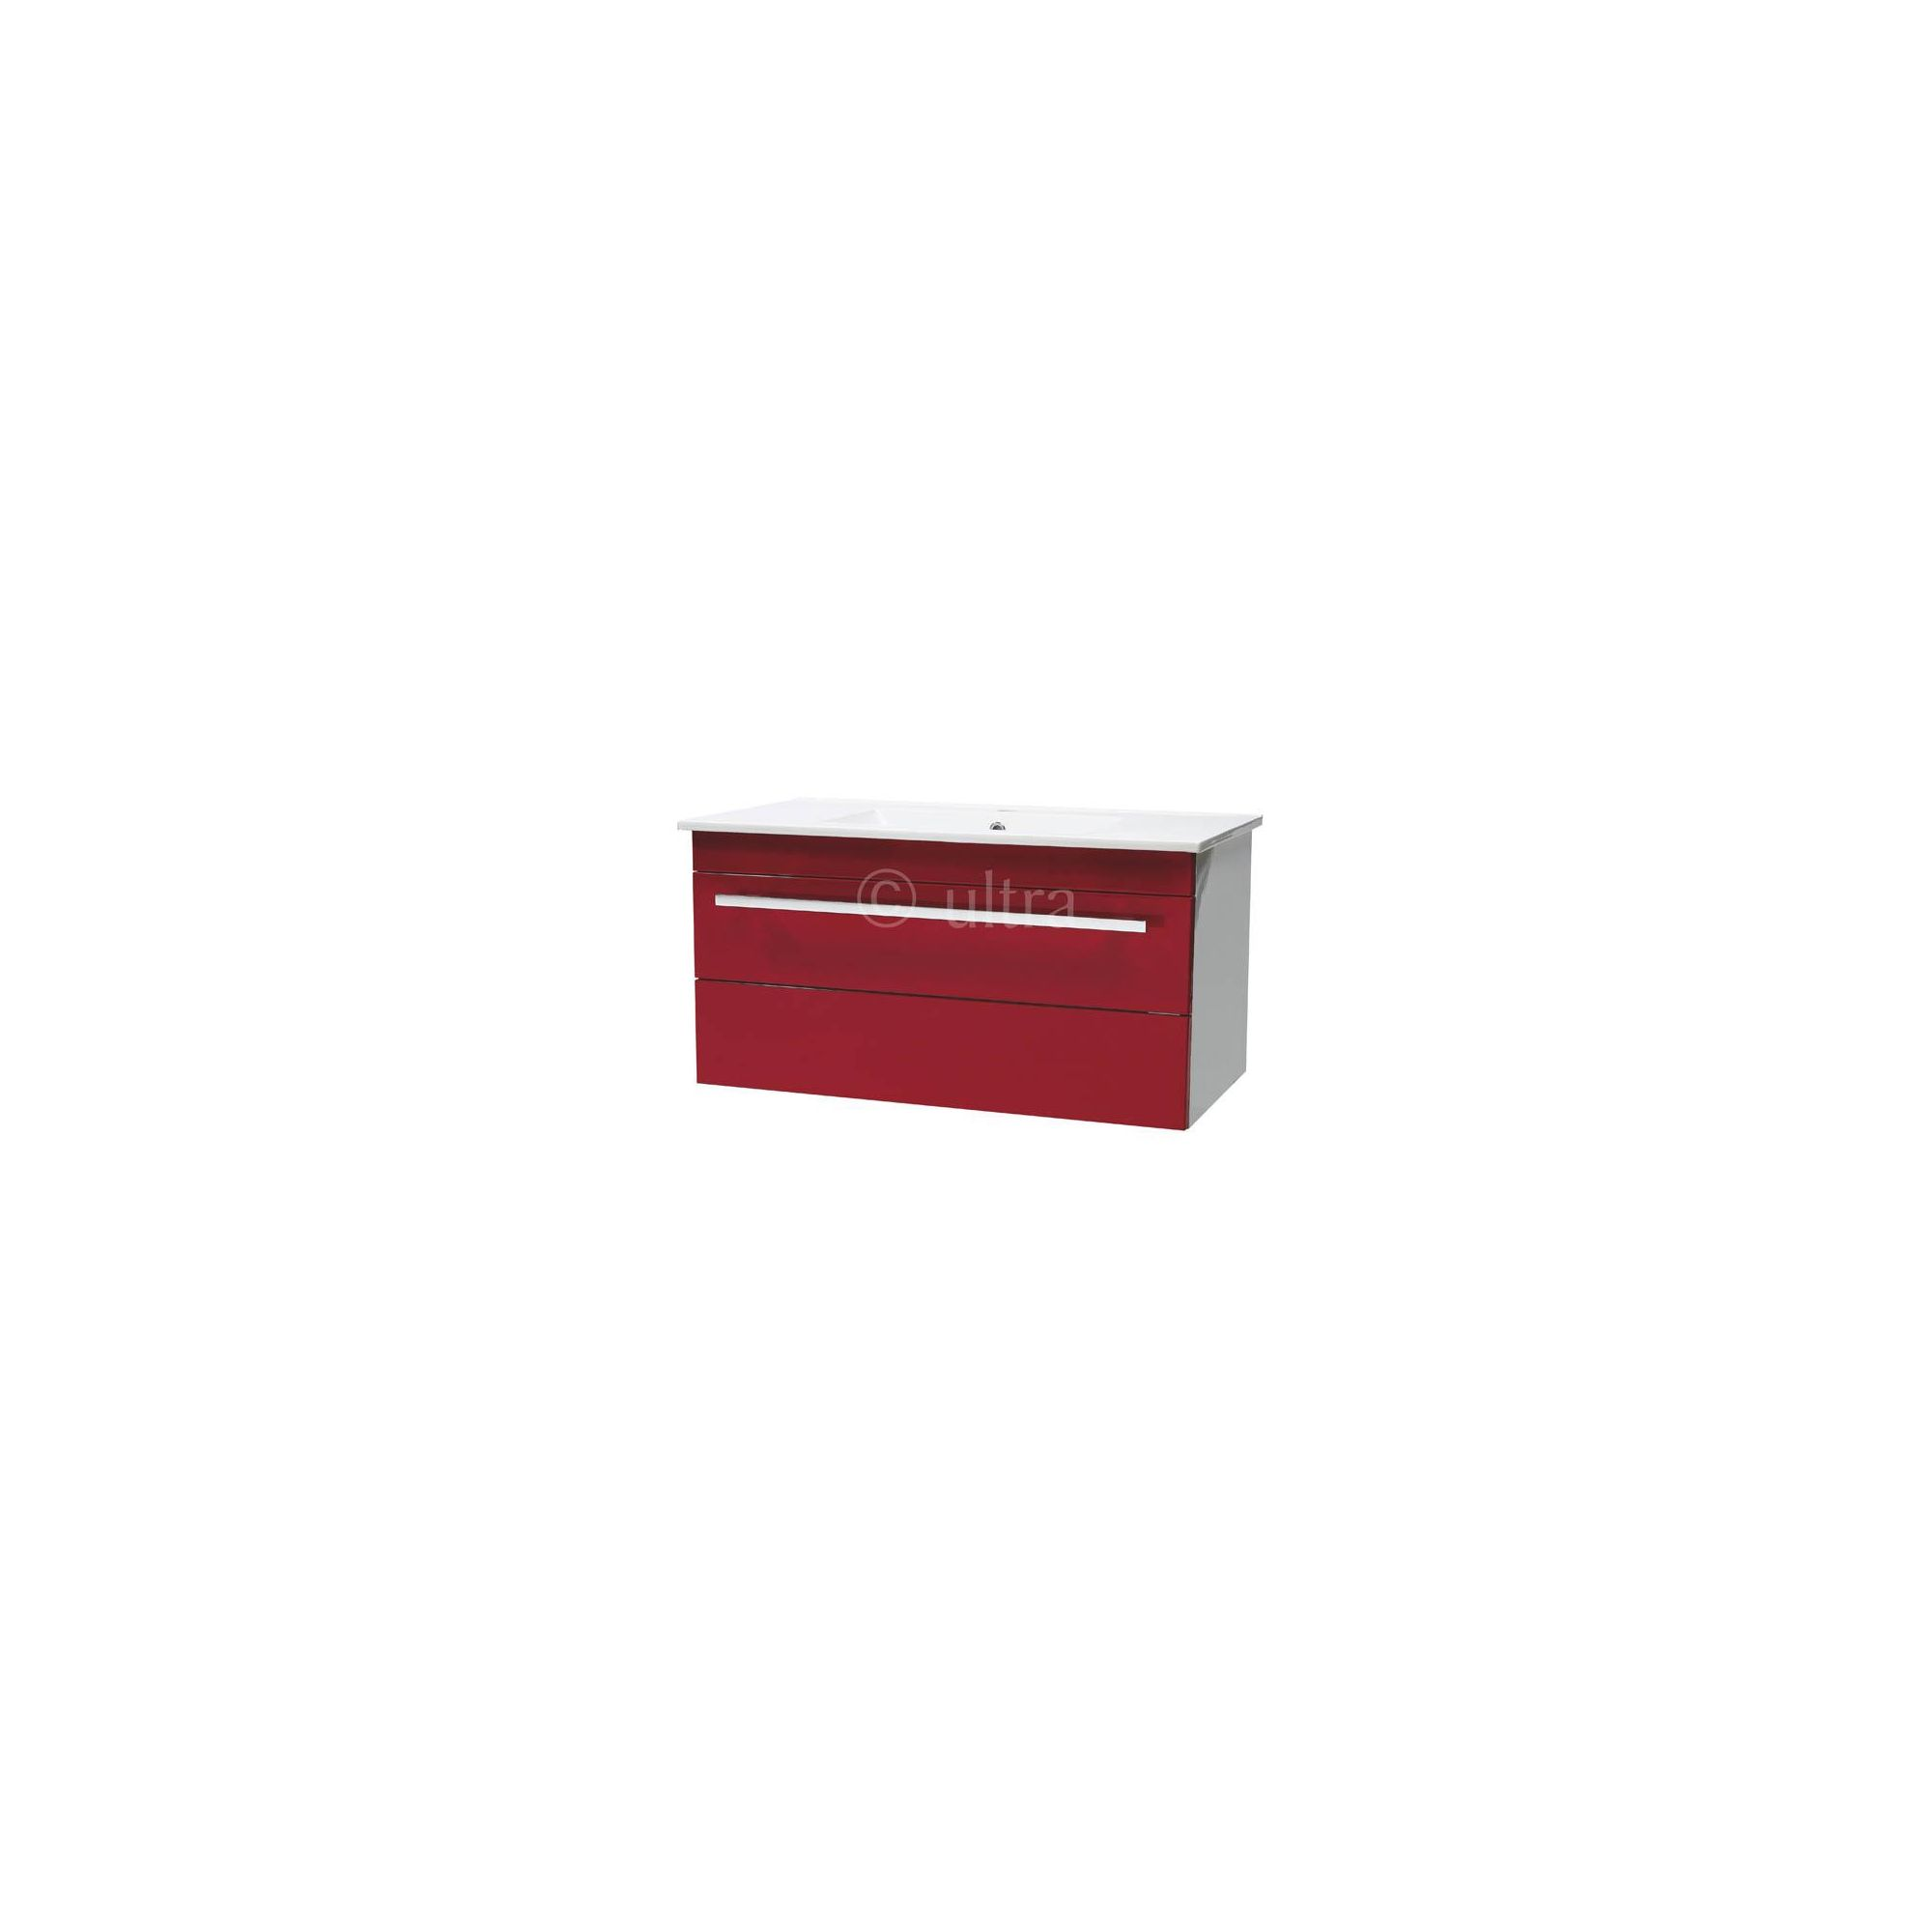 ultra design red wall mounted unit with ceramic basin 450mm